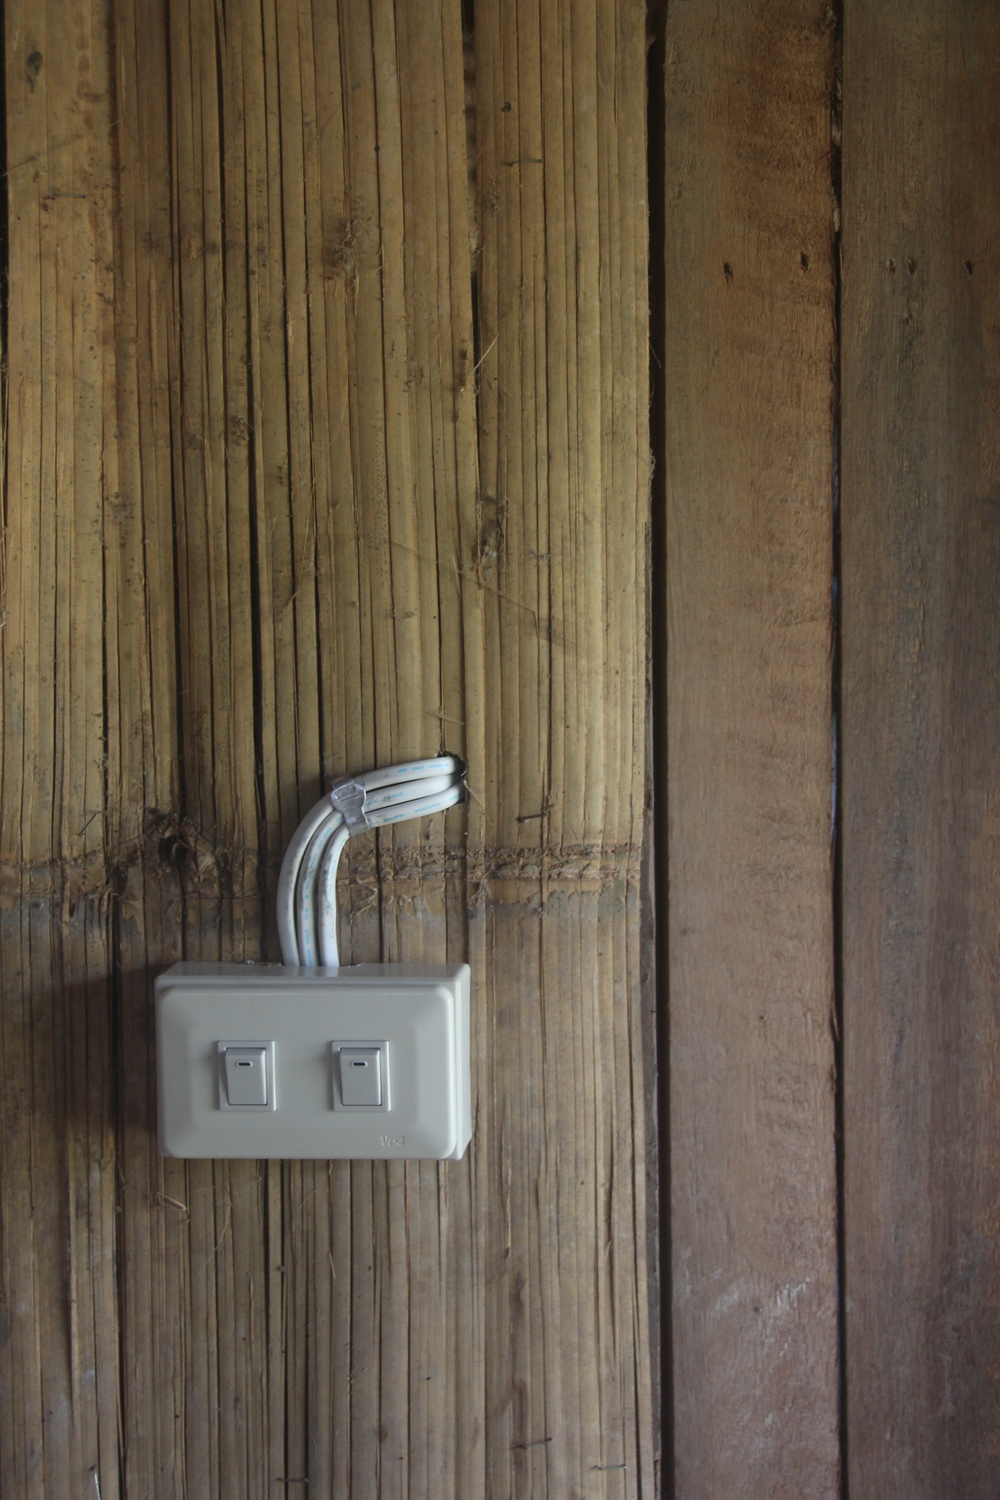 Light Switch on Bamboo